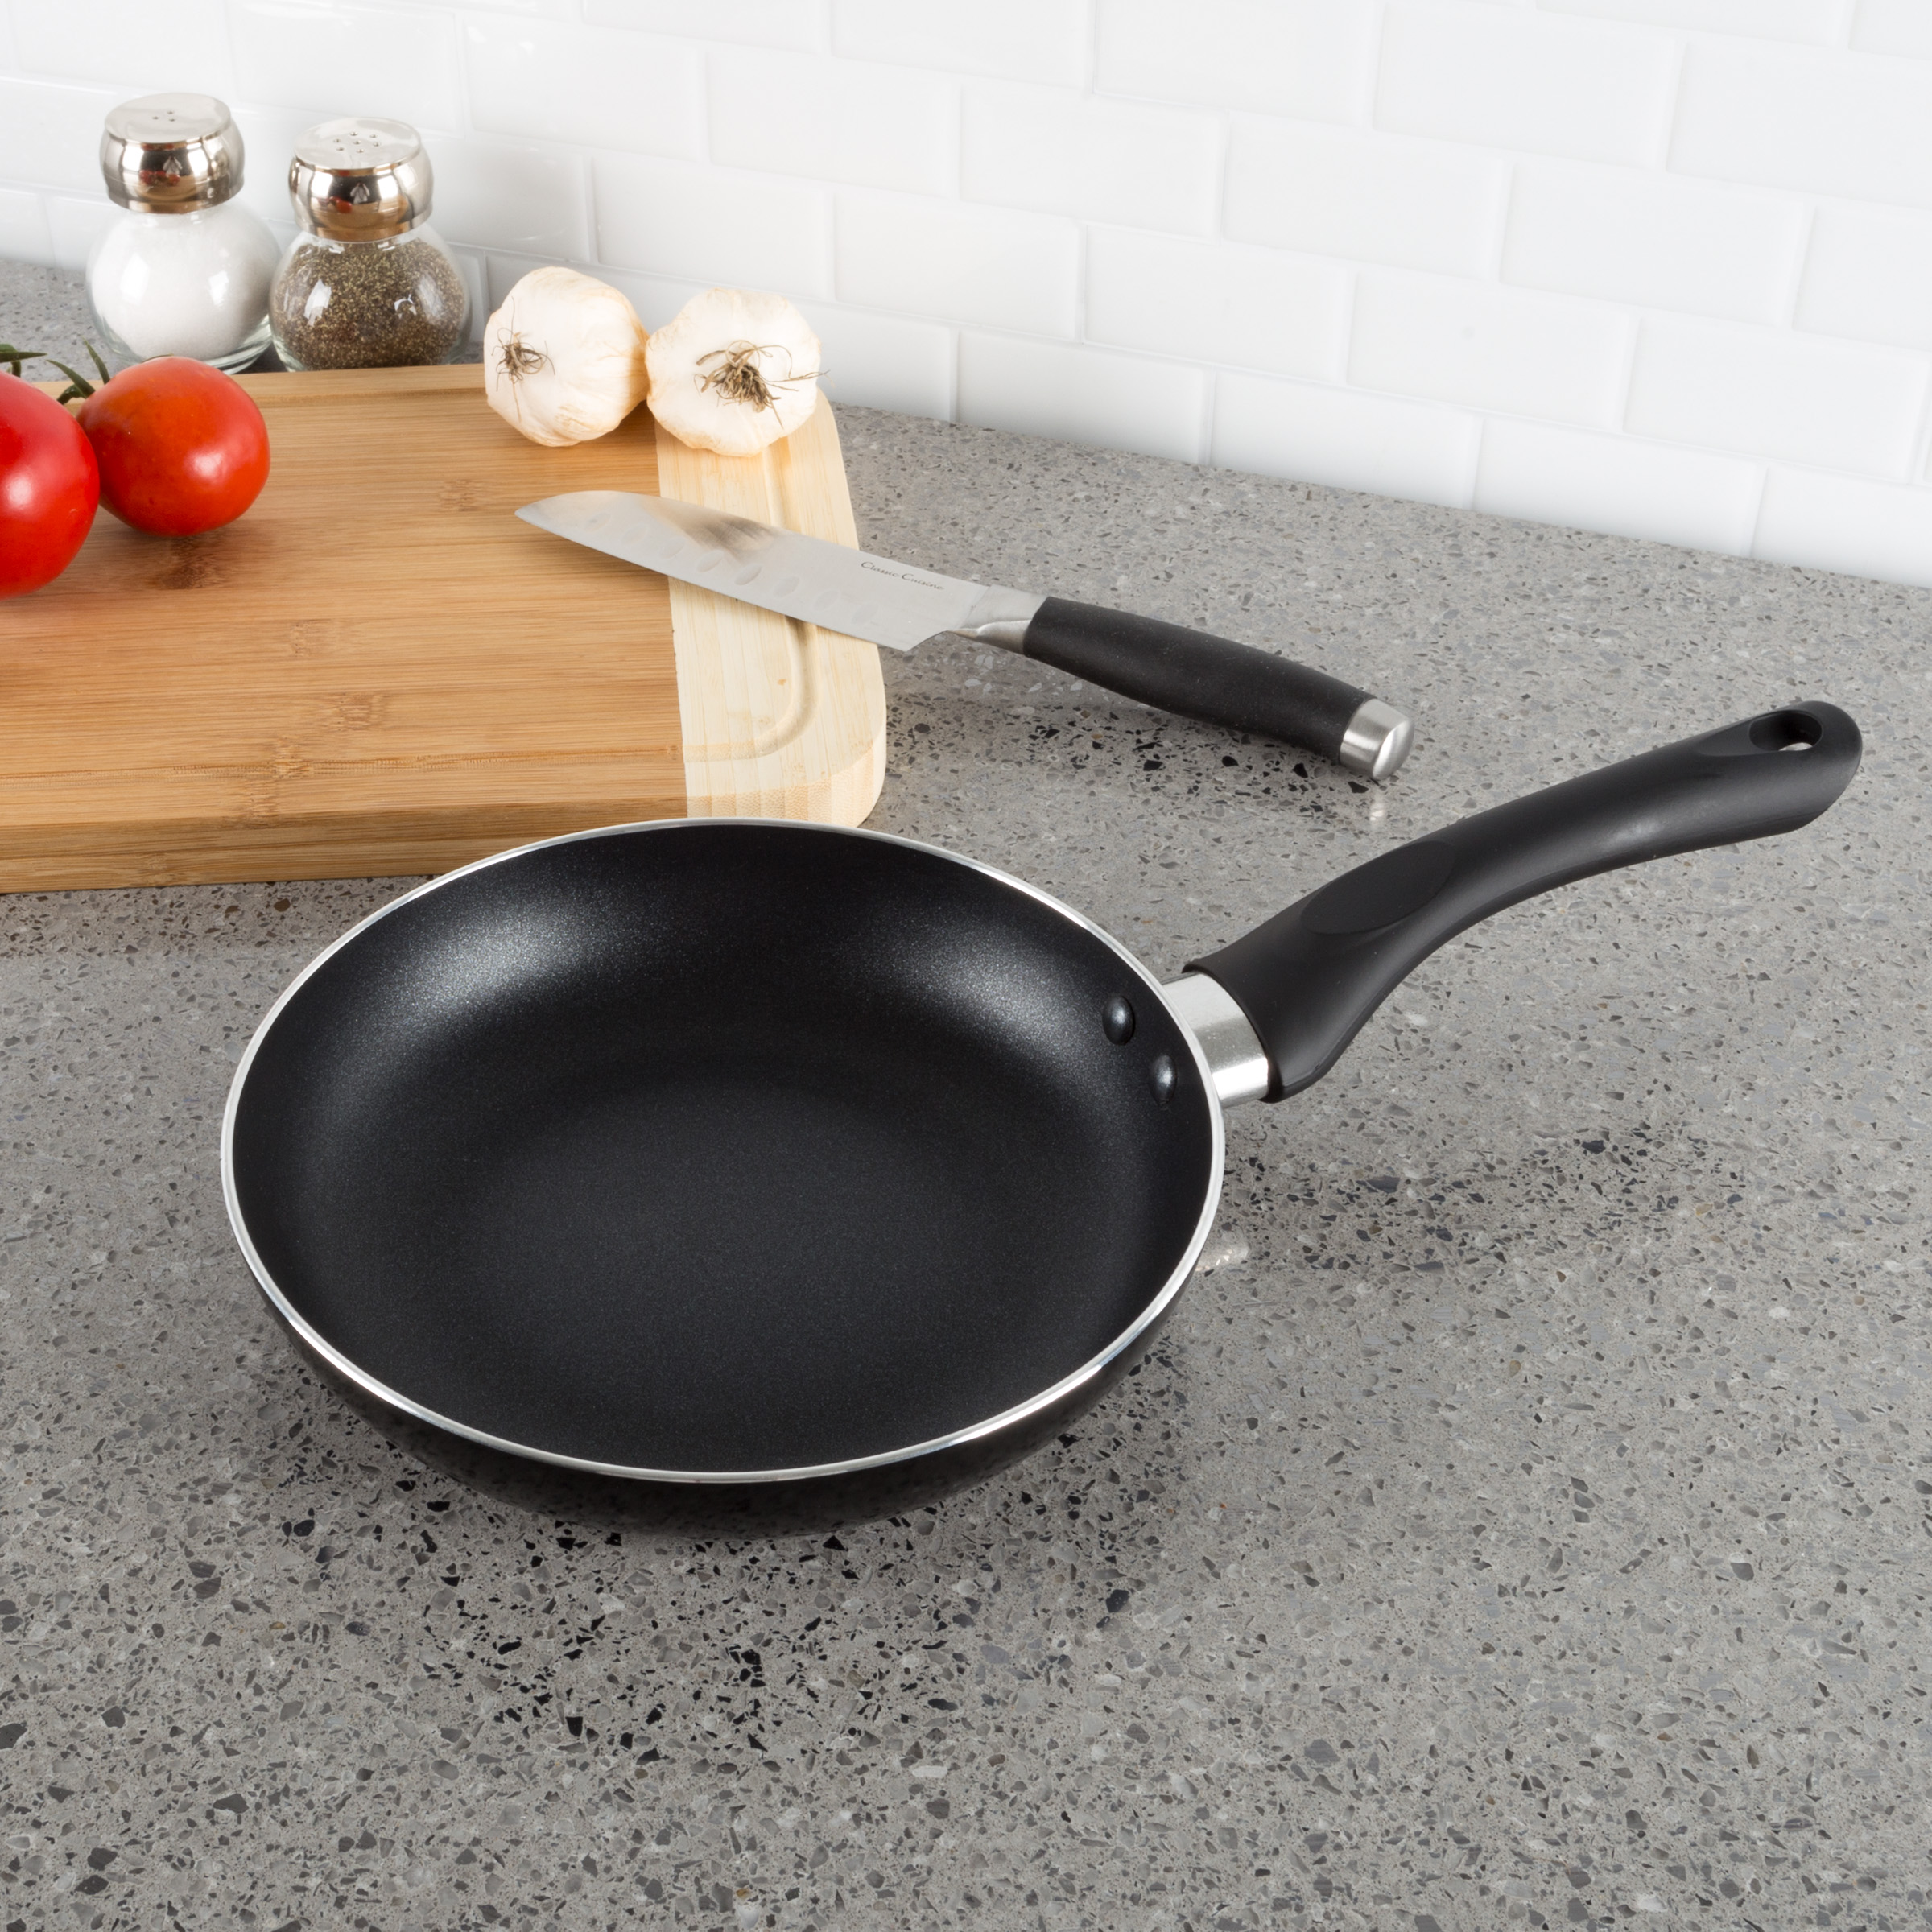 Non Stick 8? Frying Pan with Heat Safe Handle- Oven / Dishwasher Safe Allumi-Shield Cookware Skillet and Saut?? Fry Pan by Classic Cuisine (Black)